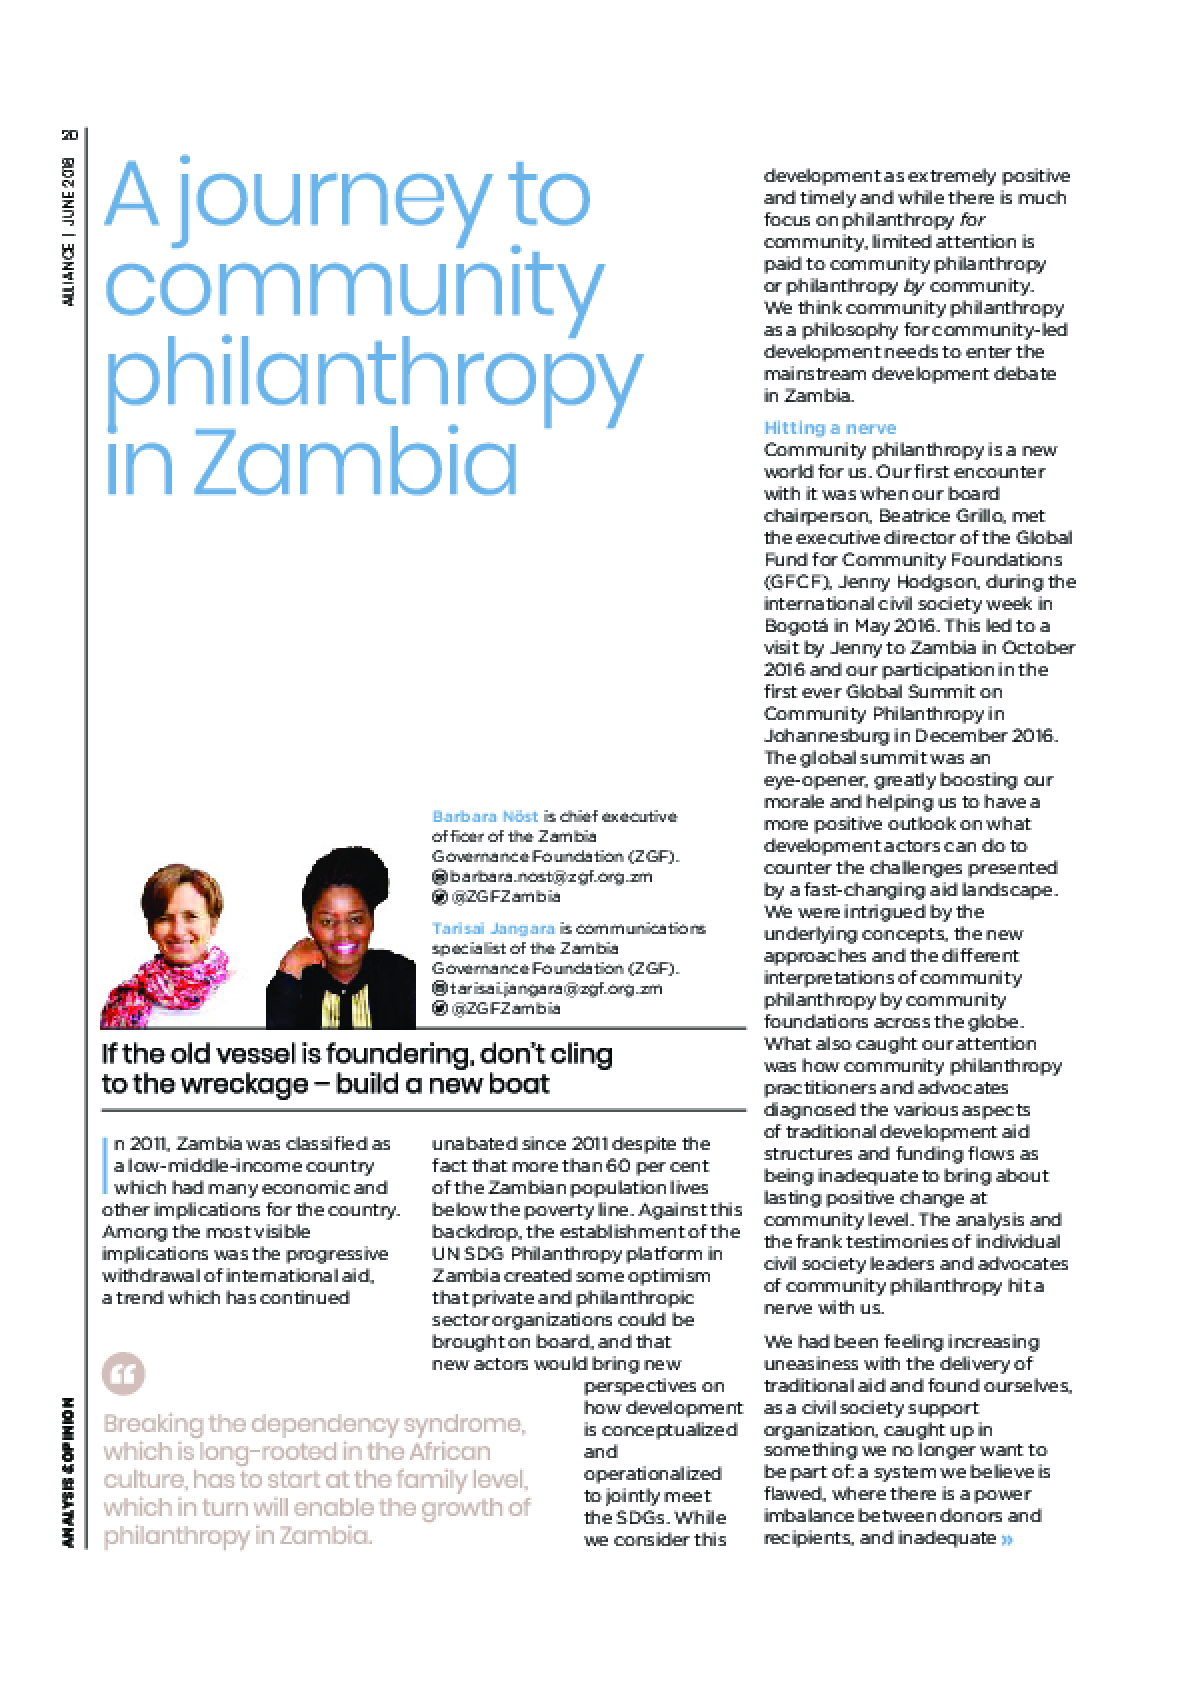 A journey to community philanthropy in Zambia